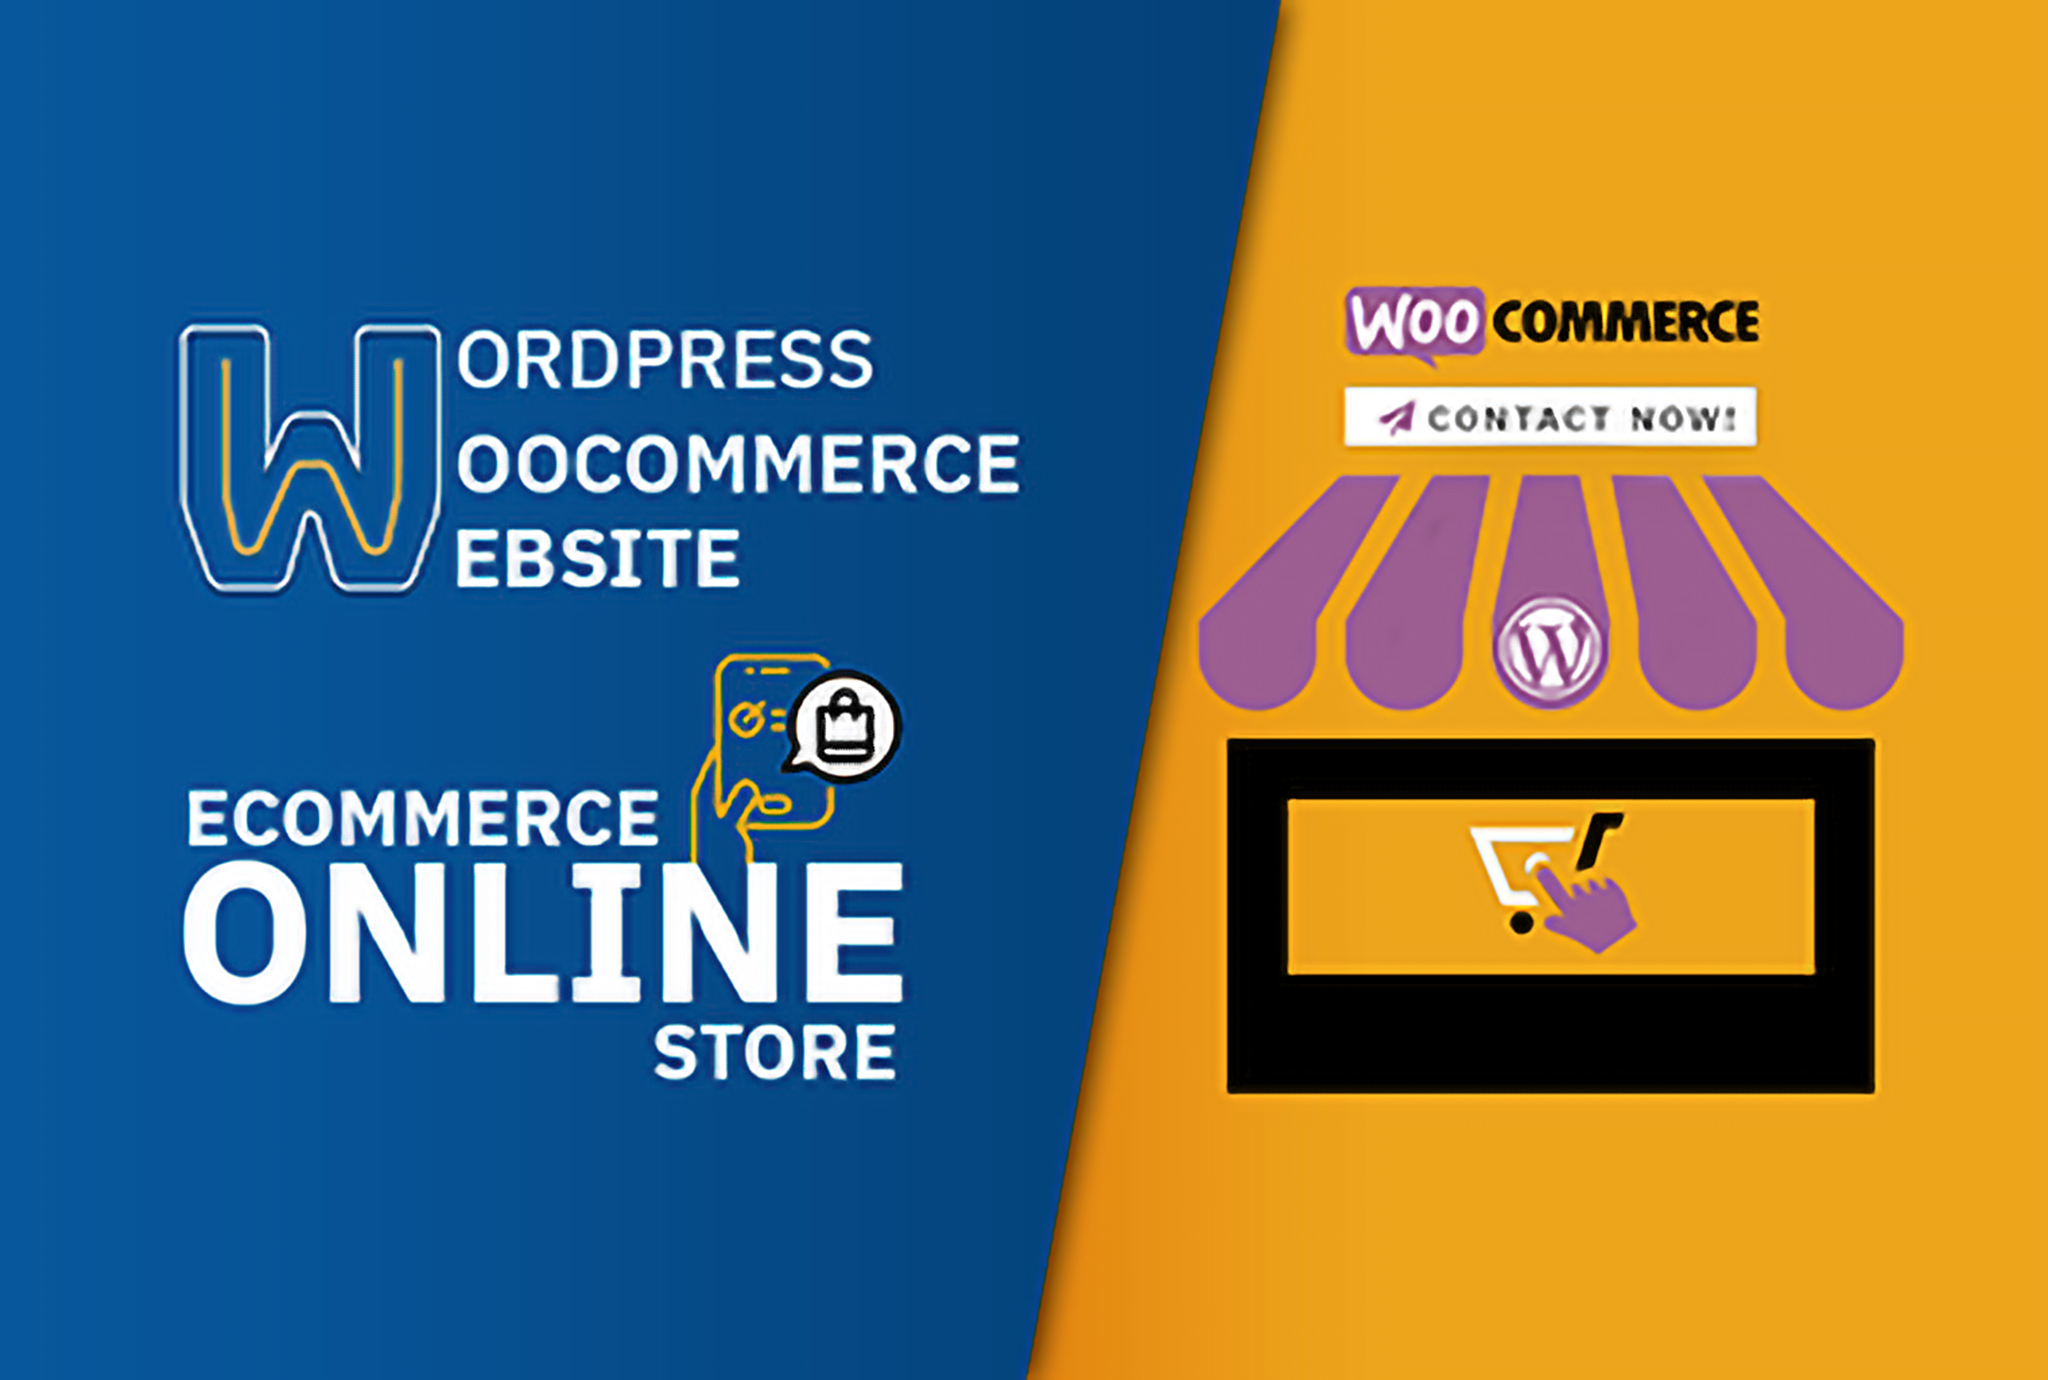 create an ecommerce online store by wordpress woocommerce